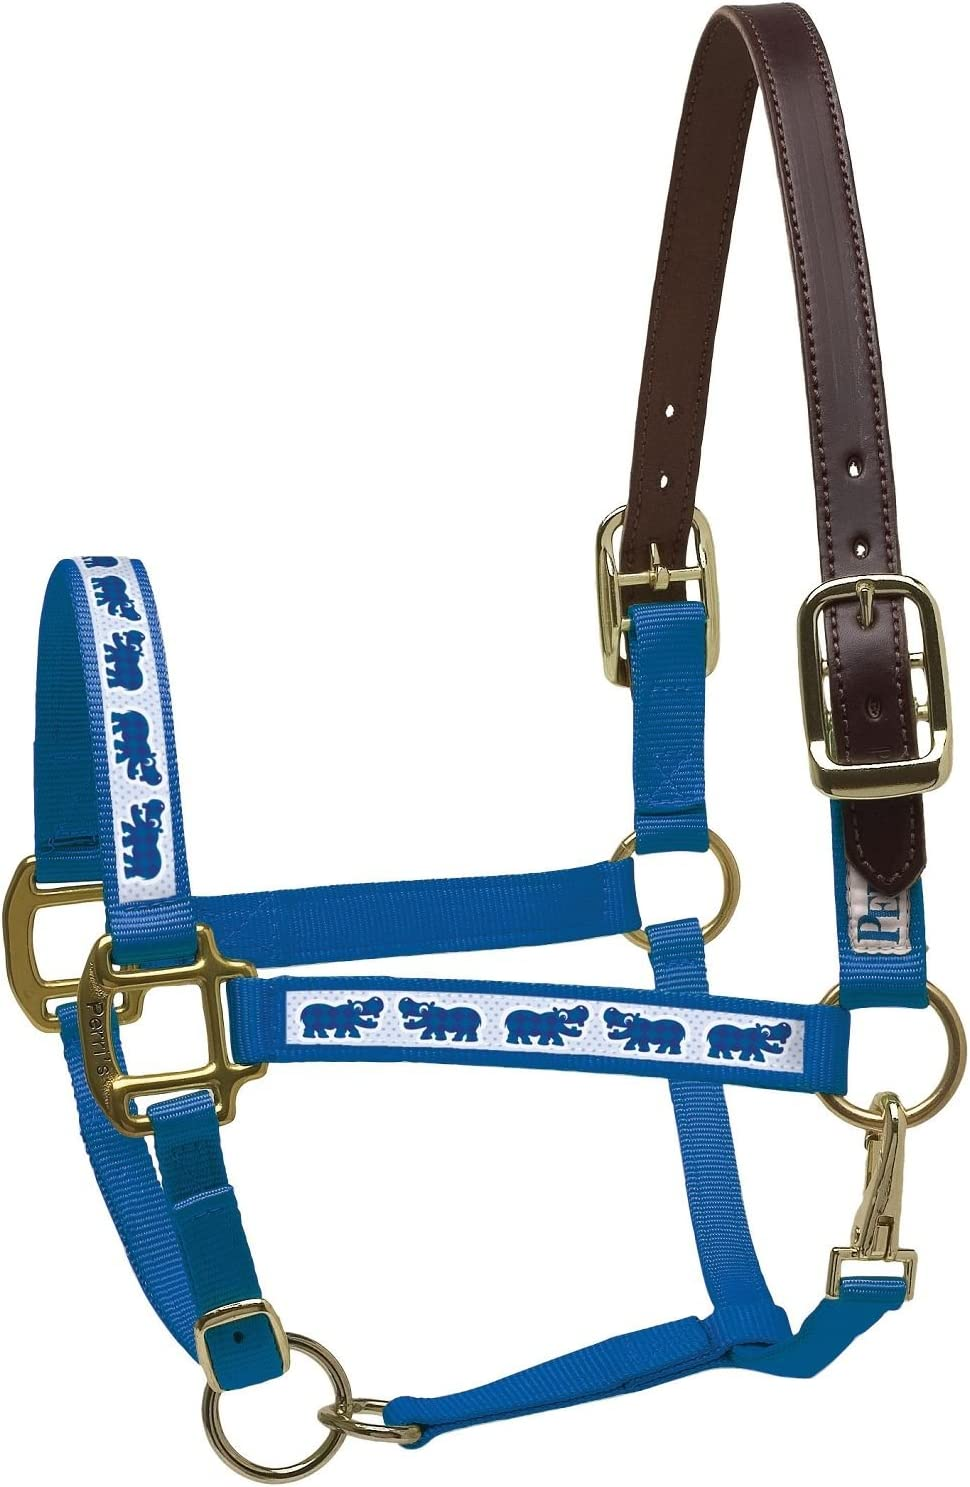 Perri's Leather Pony All items in the store Royal Ultra-Cheap Deals Blue Ribbon Nylon Safety Hippos with